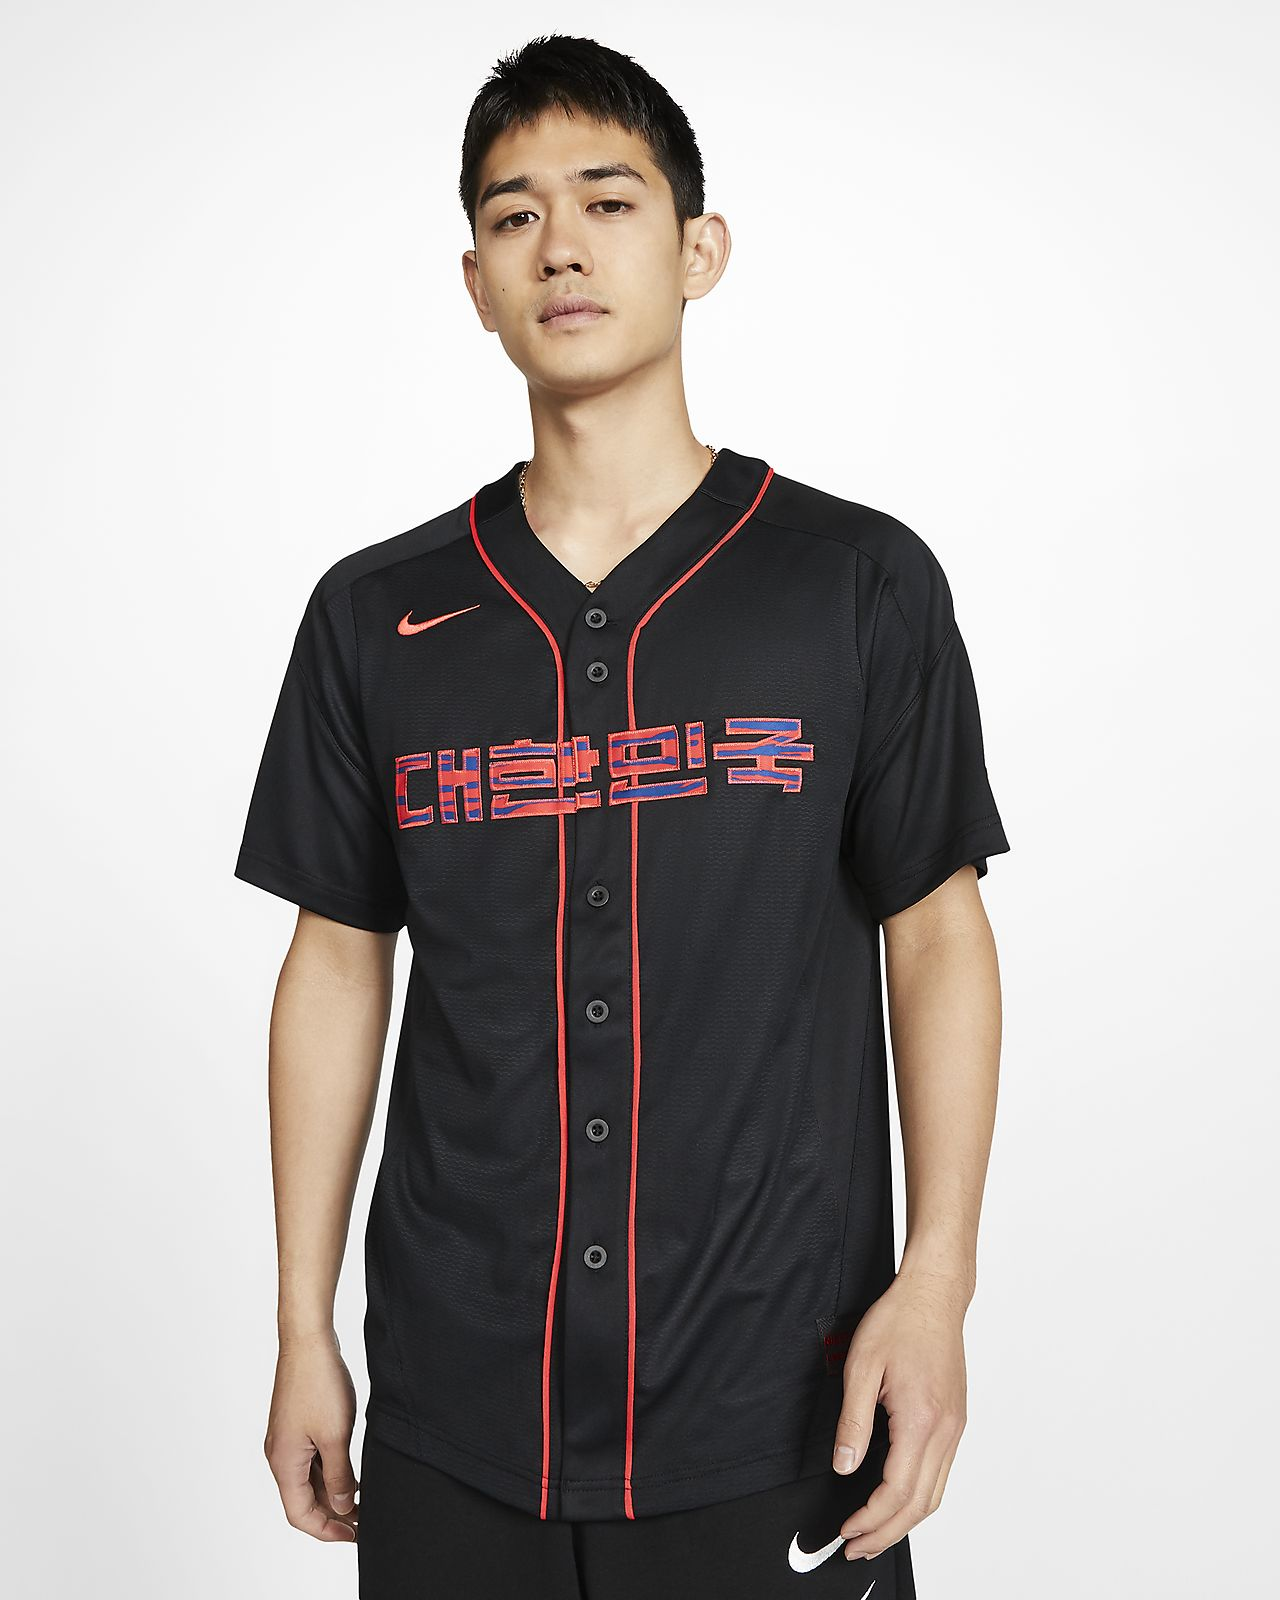 Korea Men's Baseball Jersey